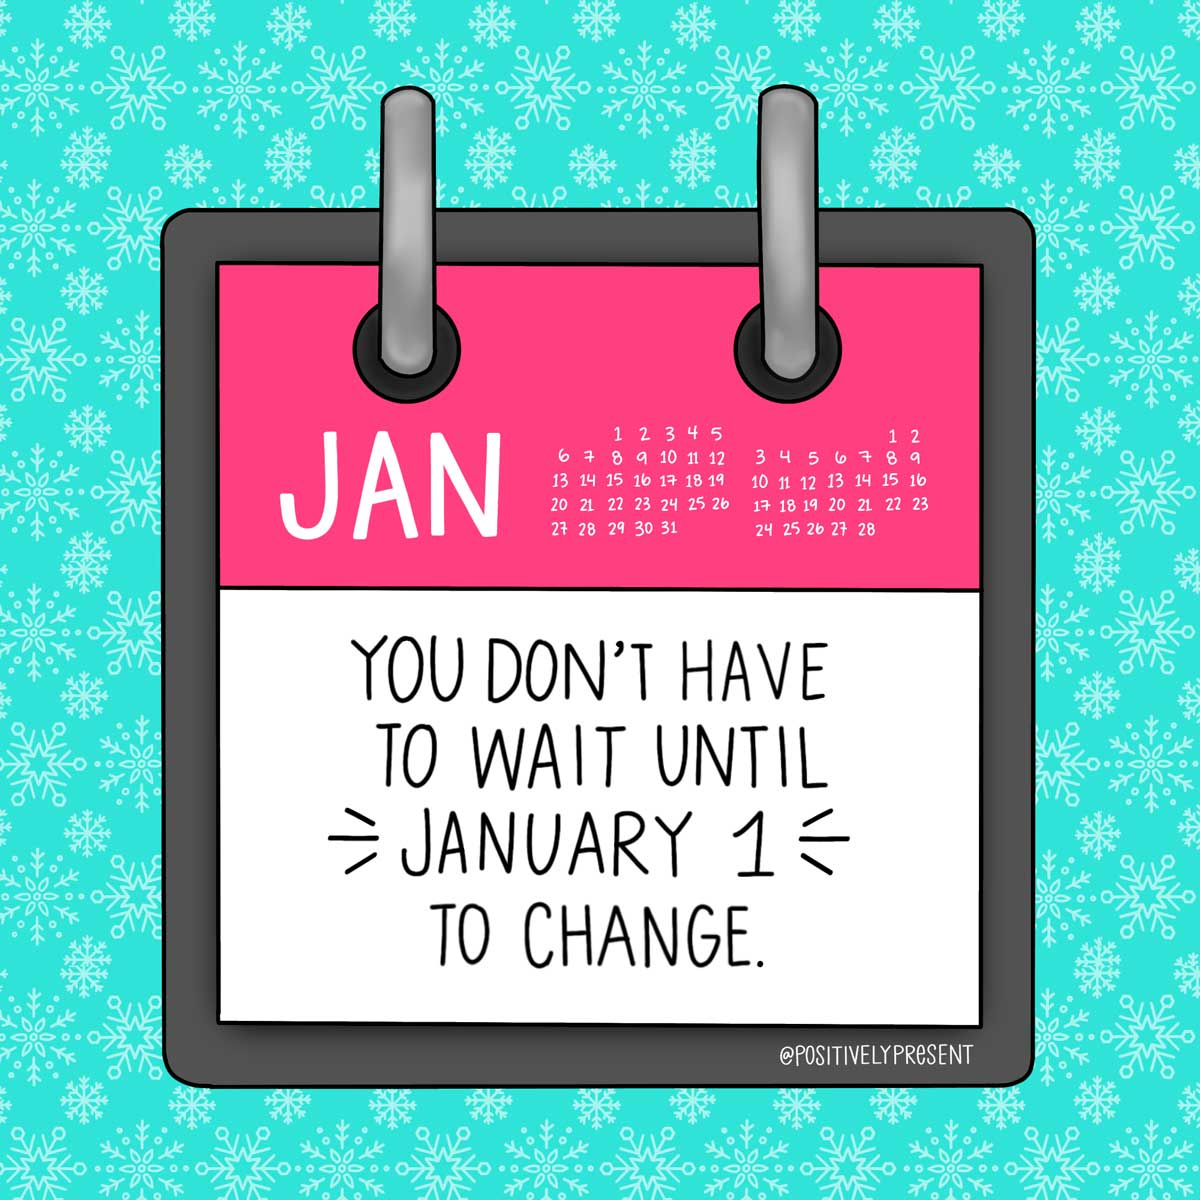 don't wait until january 1 to change quote on drawing of calendar.